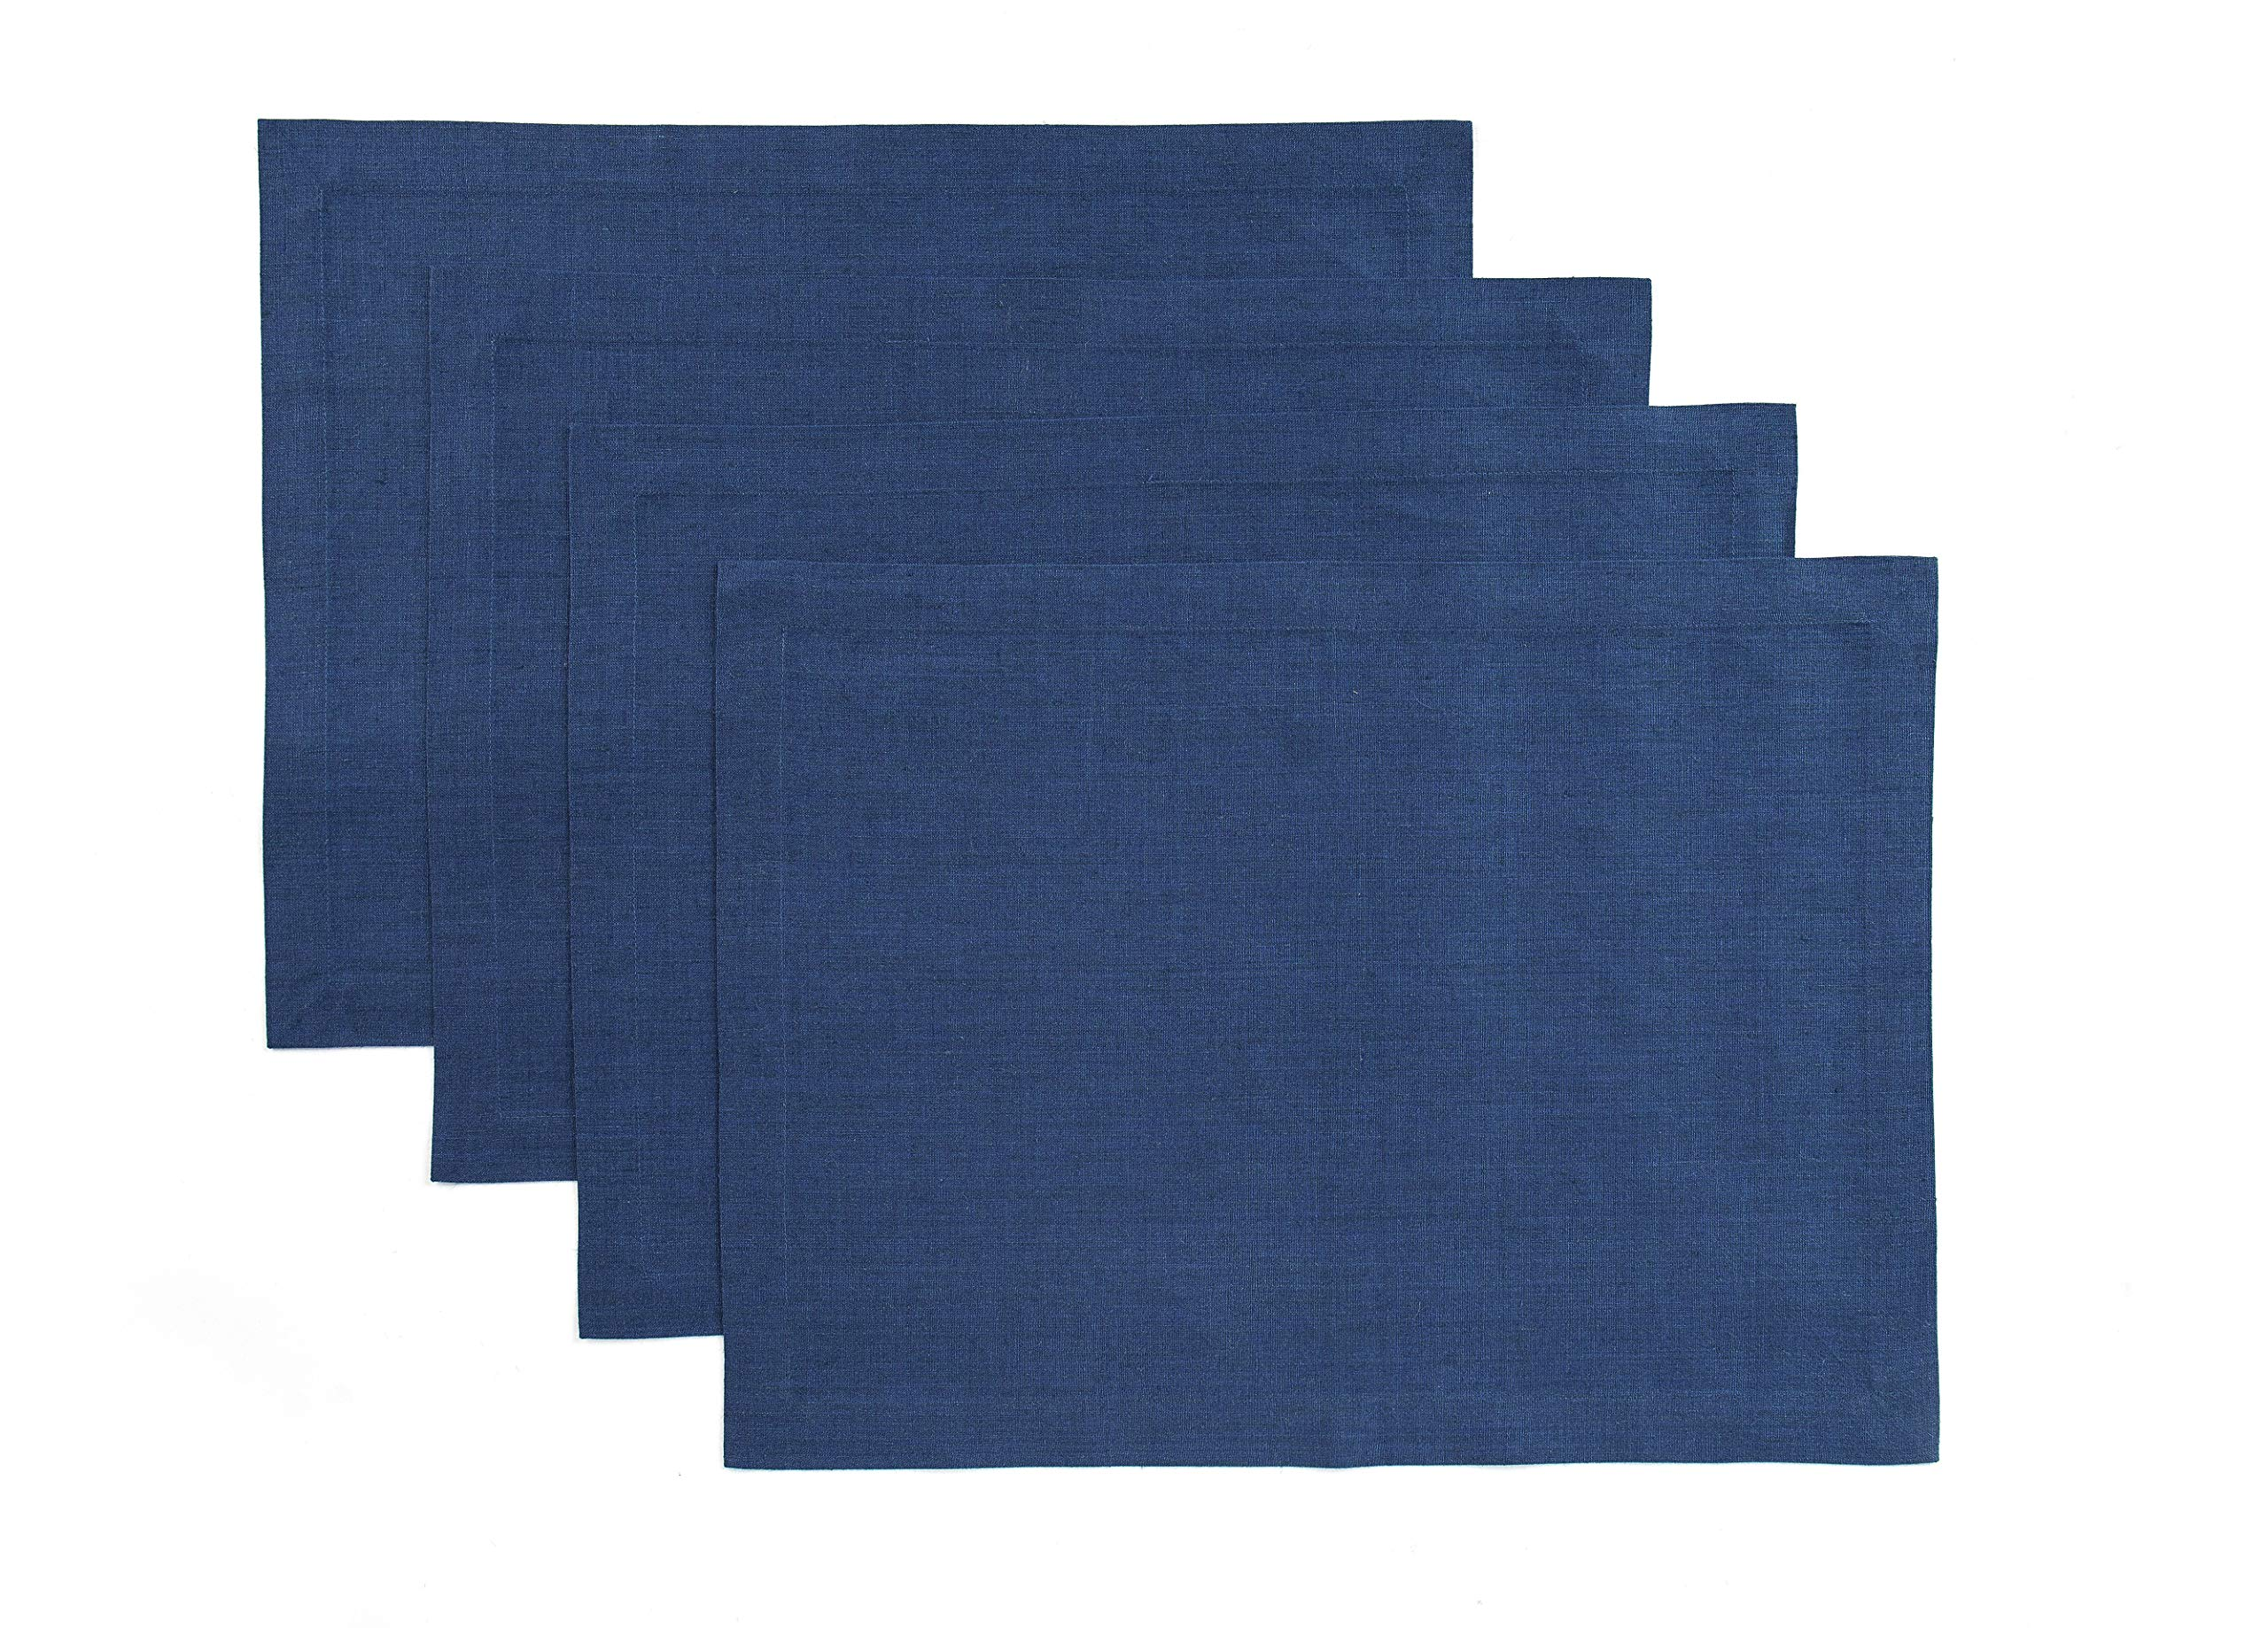 Solino Home 100% Pure Linen Handcrafted Placemats Tesoro Set of 4, 14 x 19 Inch Blue Placemats